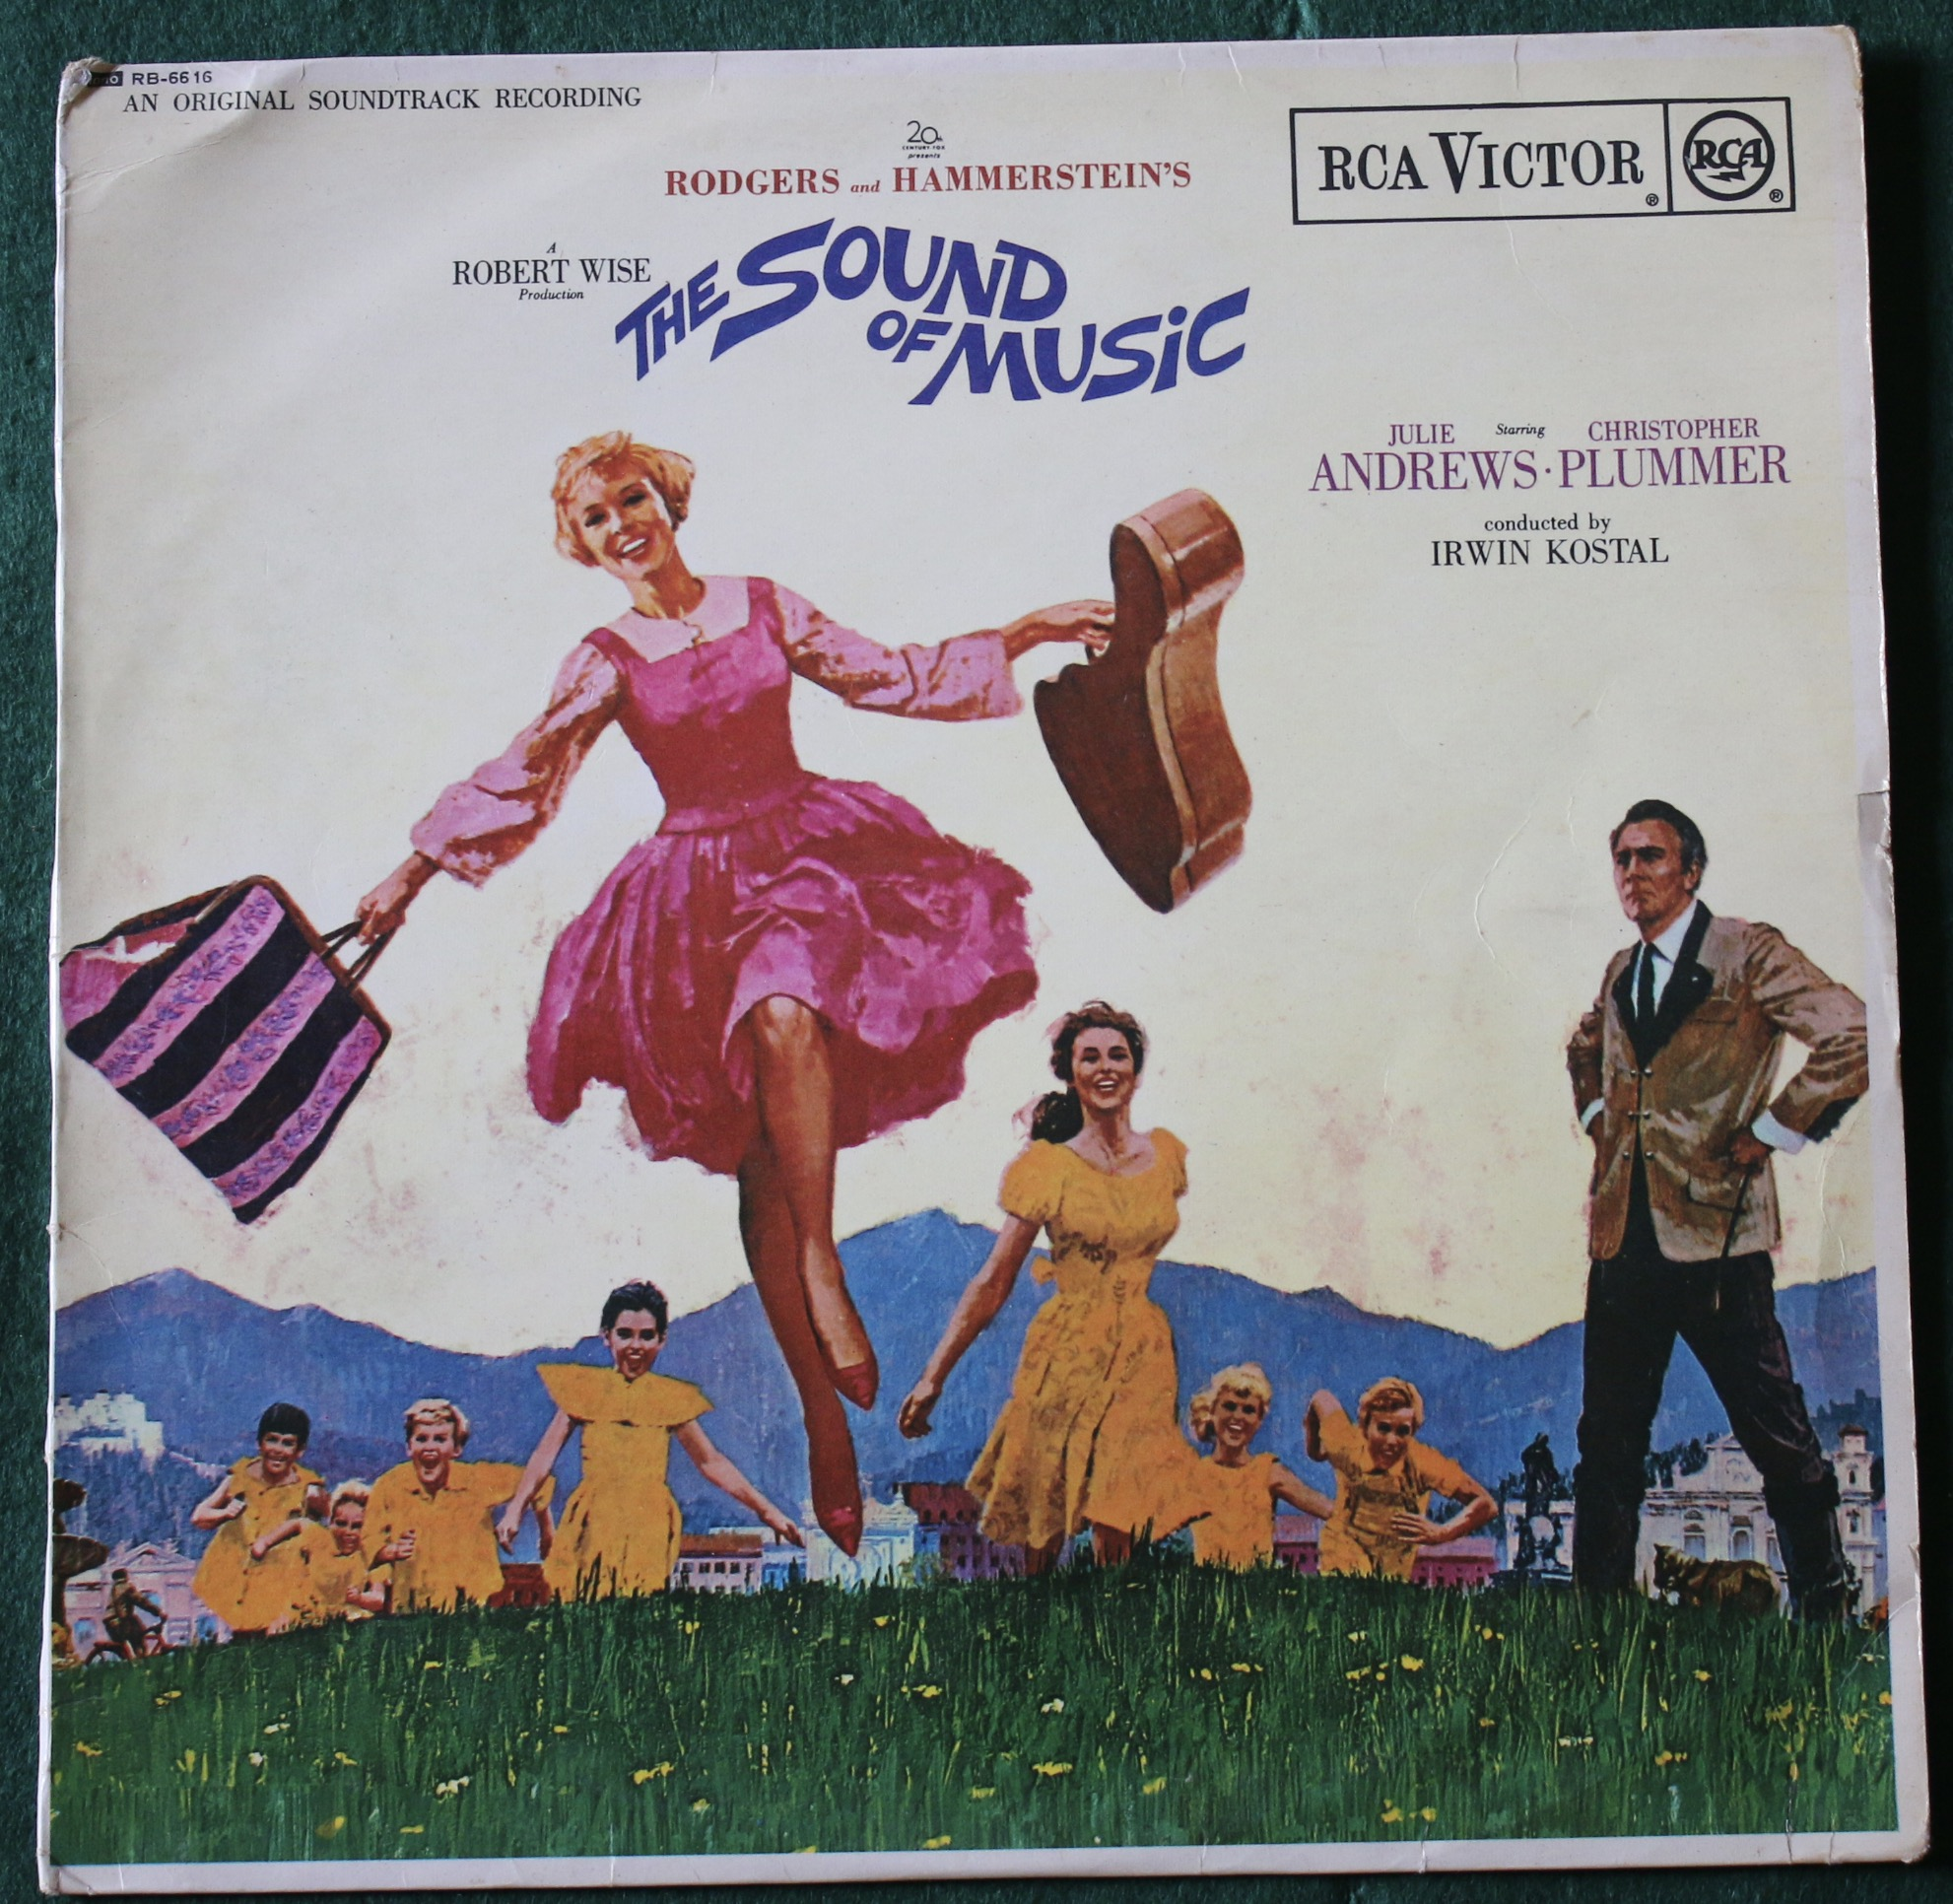 Sound of Music Album (From Tim to Brady)